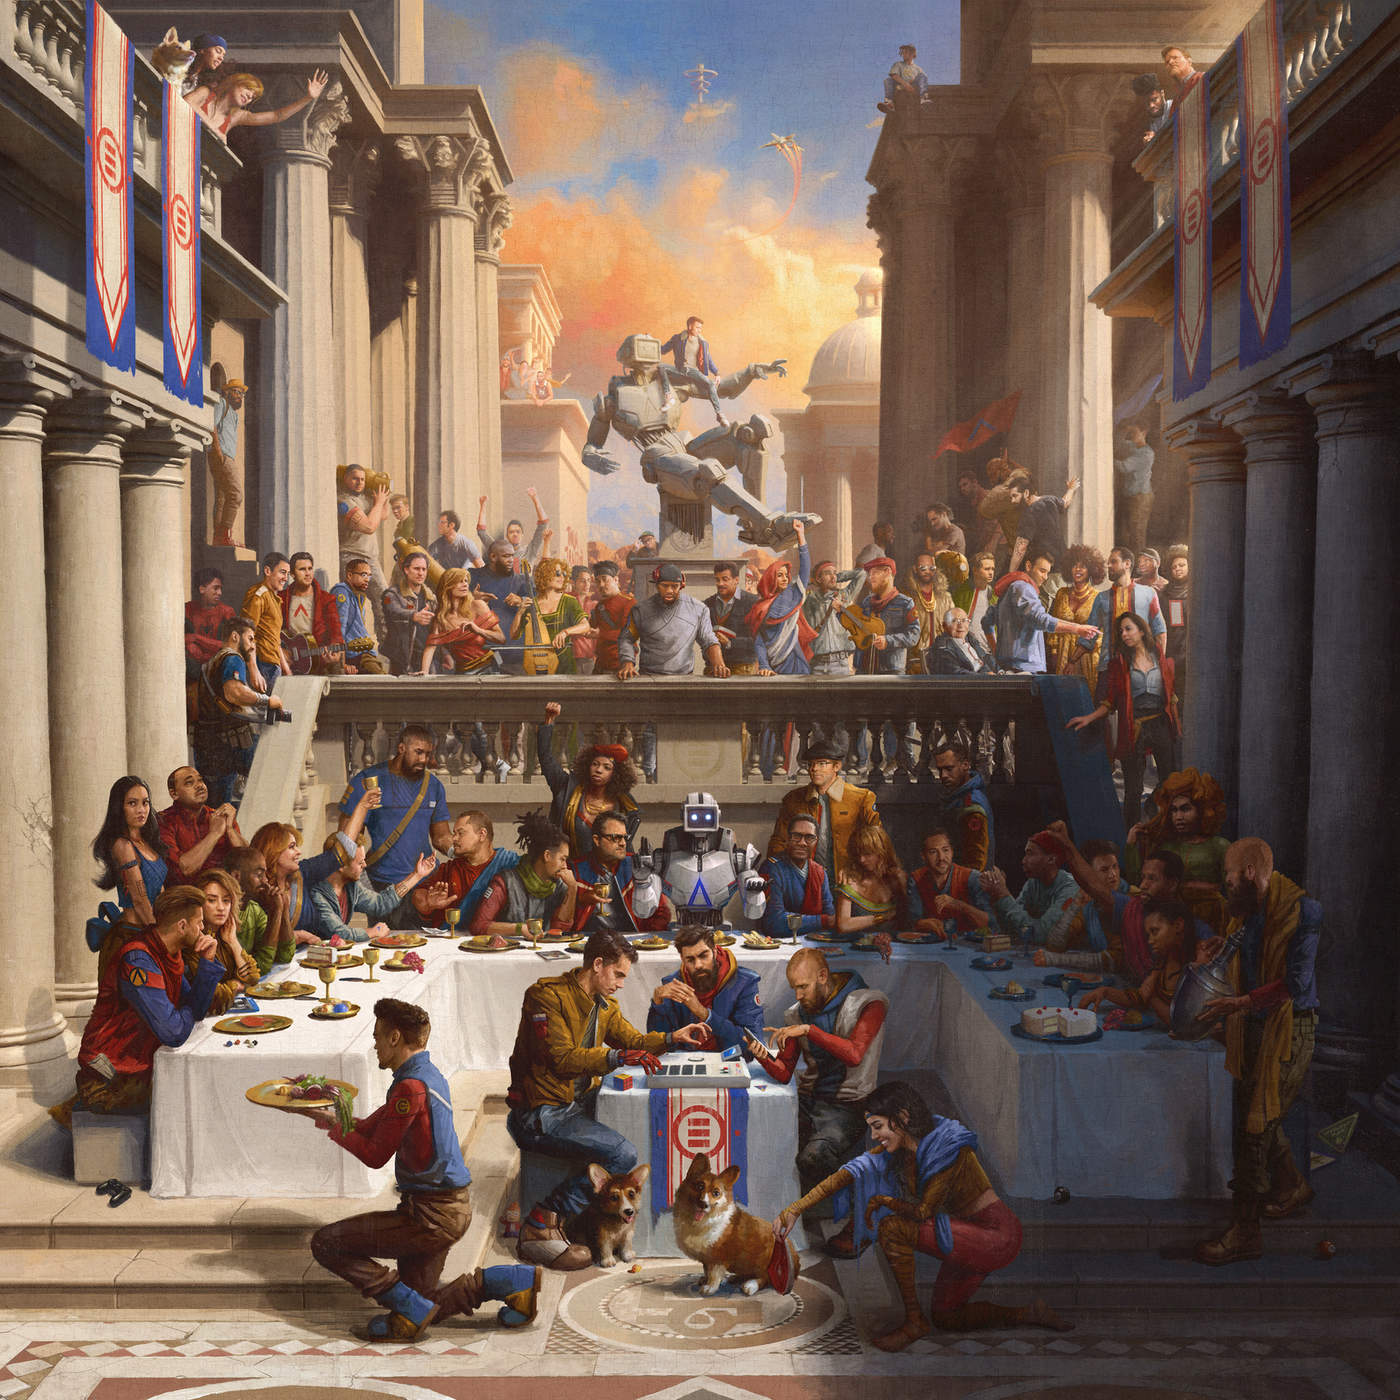 Logic - Black SpiderMan (feat. Damian Lemar Hudson) - Single Cover